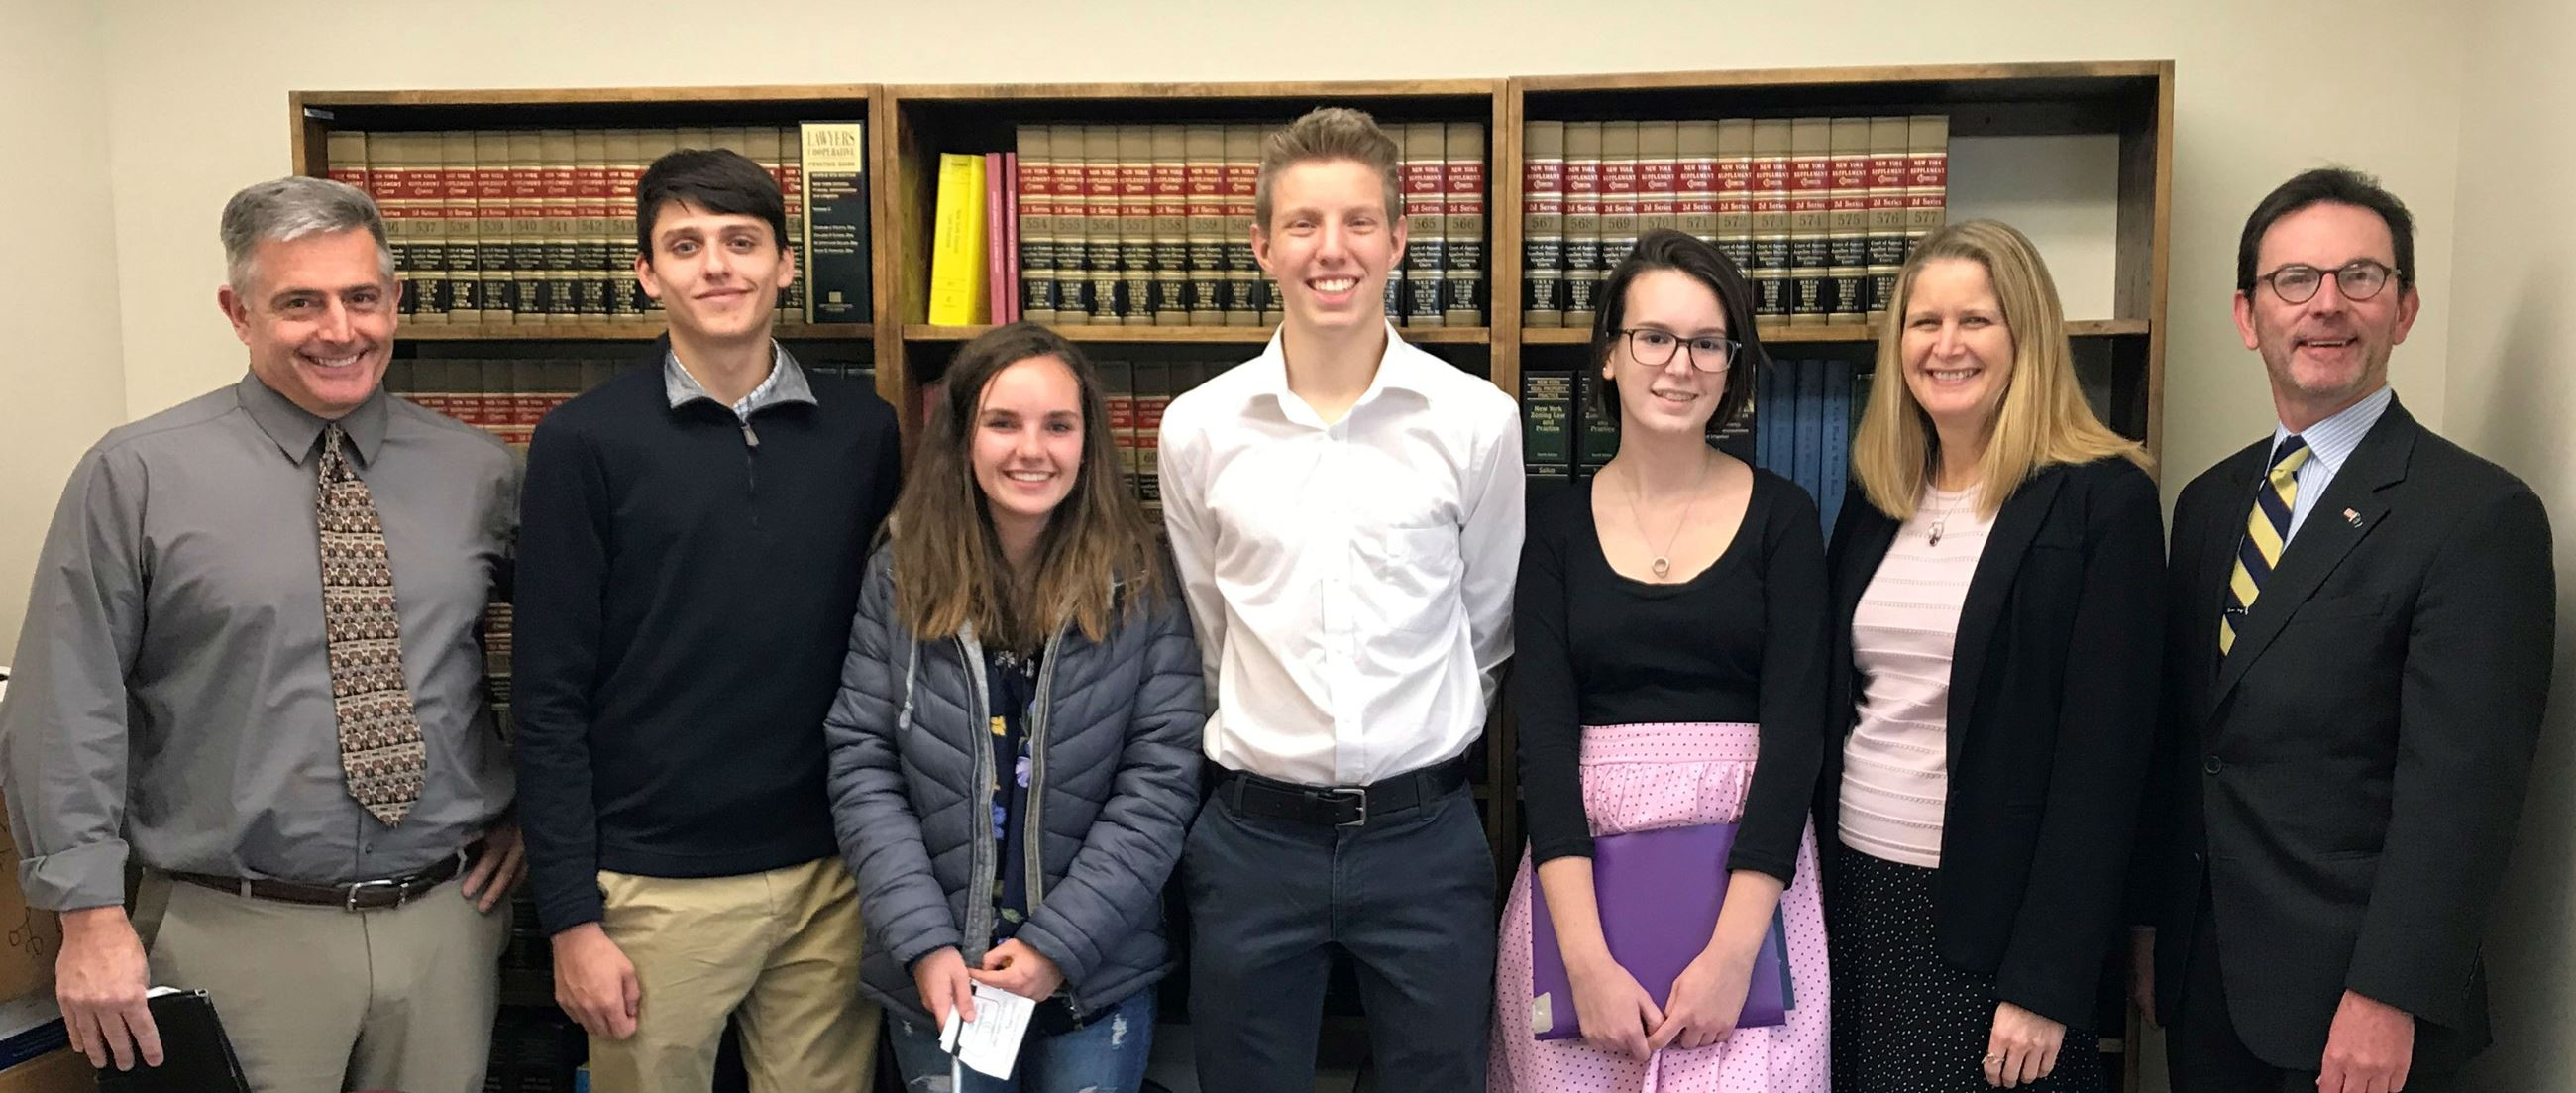 High School Students Visit the County Attorneys Office